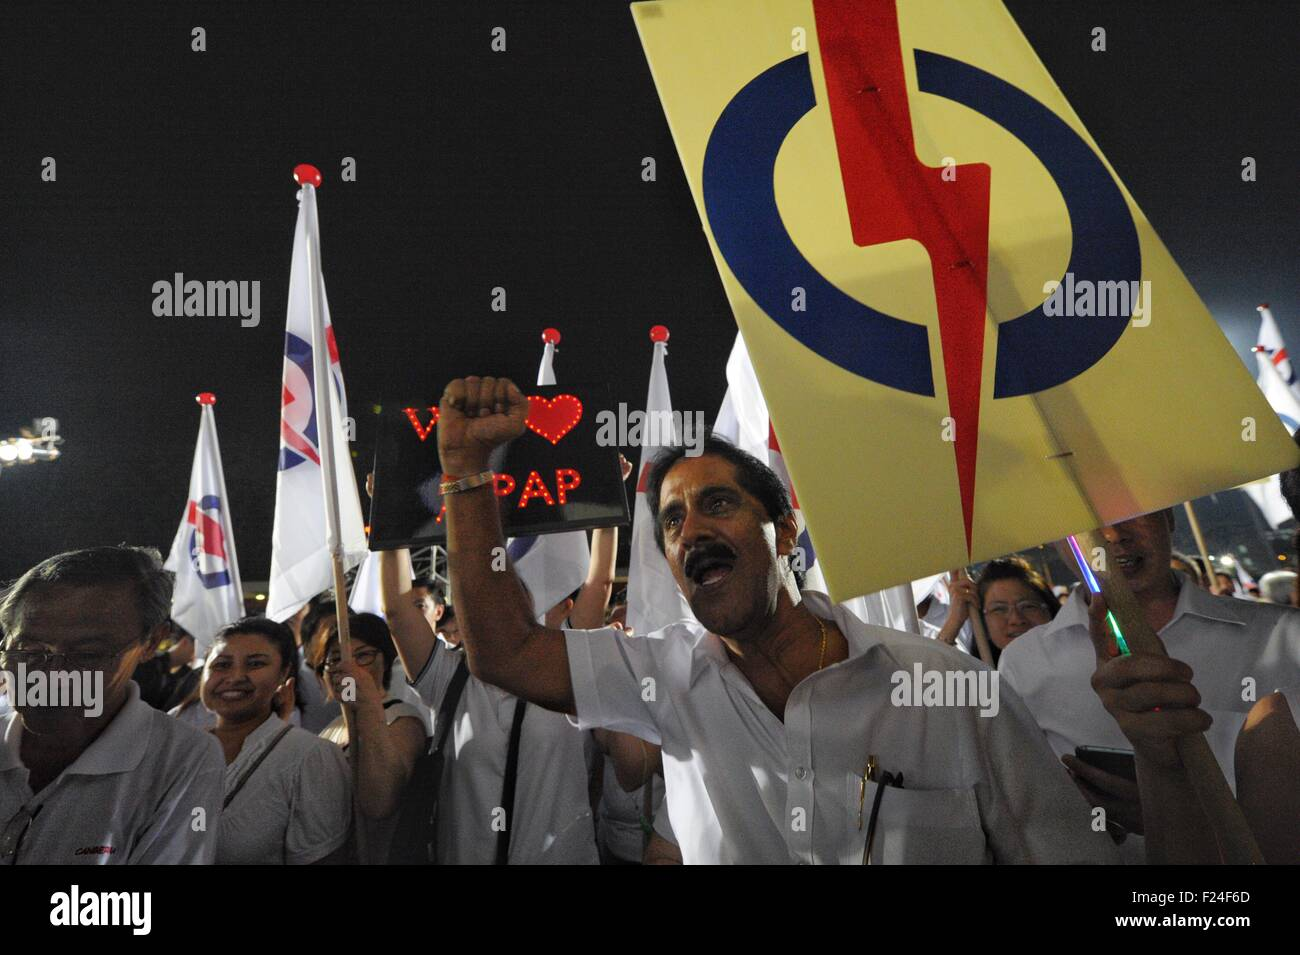 Singapore. 11th Sep, 2015. Singapore's People's Action Party's (PAP) supporters cheer at the assembly - Stock Image